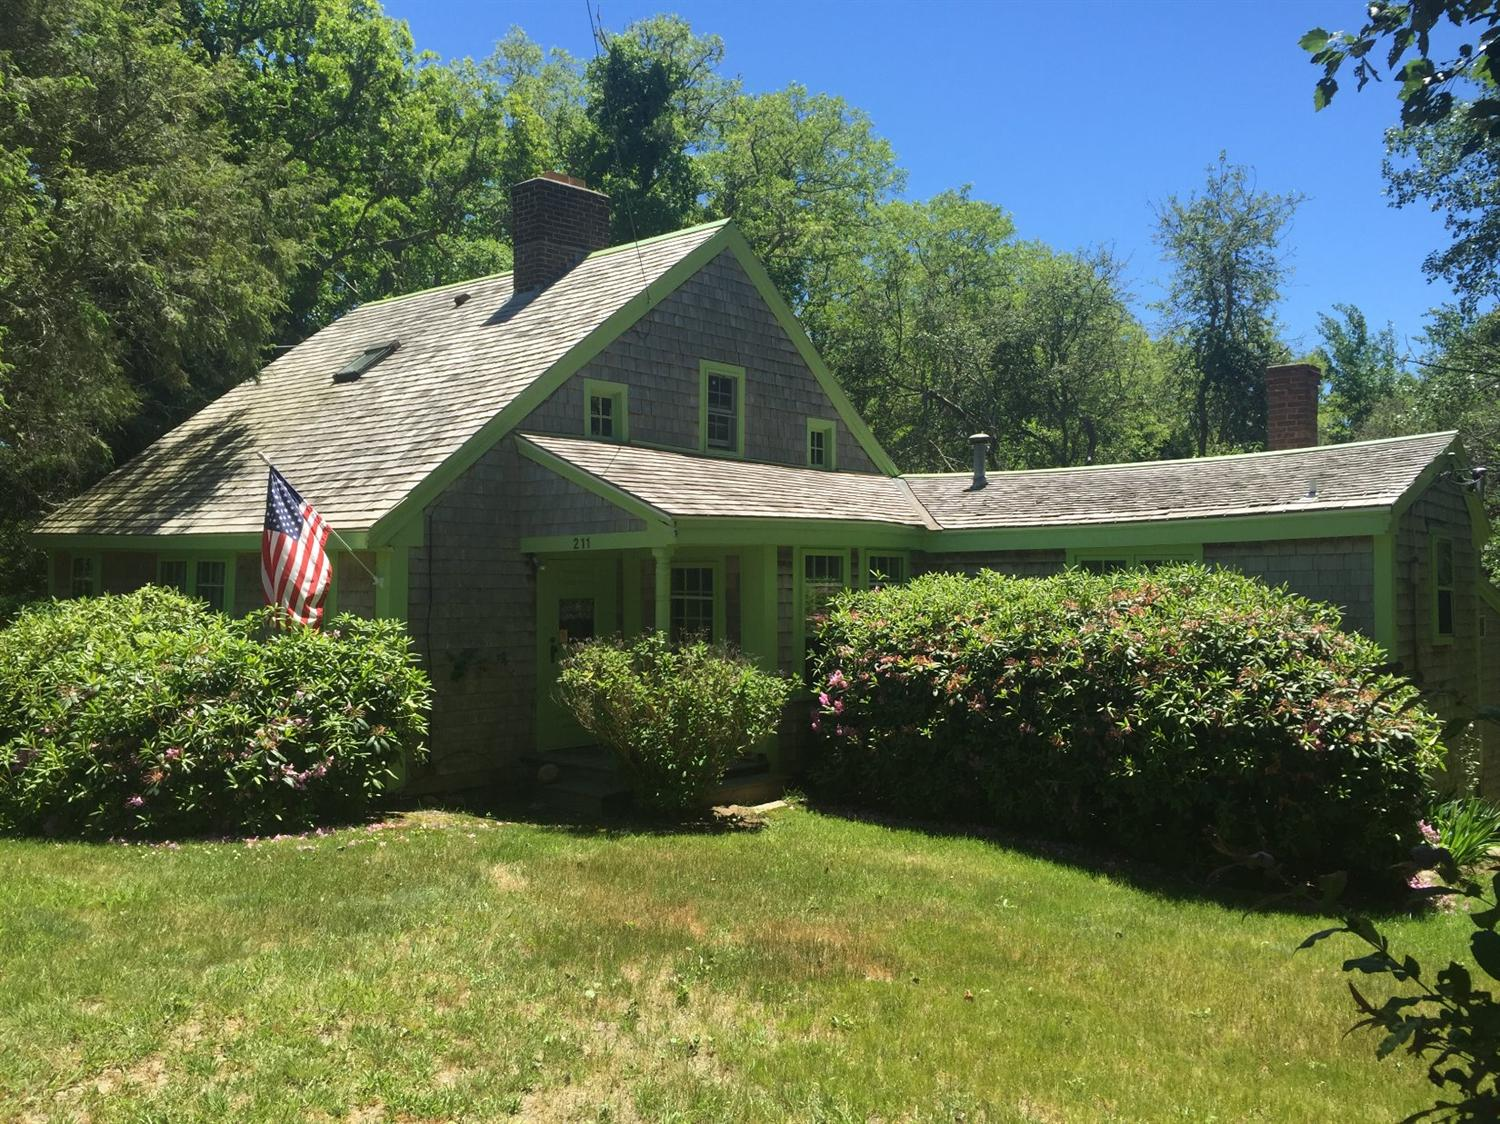 Single Family Home for Sale at 211 Pleasant Bay Road, Harwich, MA Harwich, Massachusetts, 02645 United States